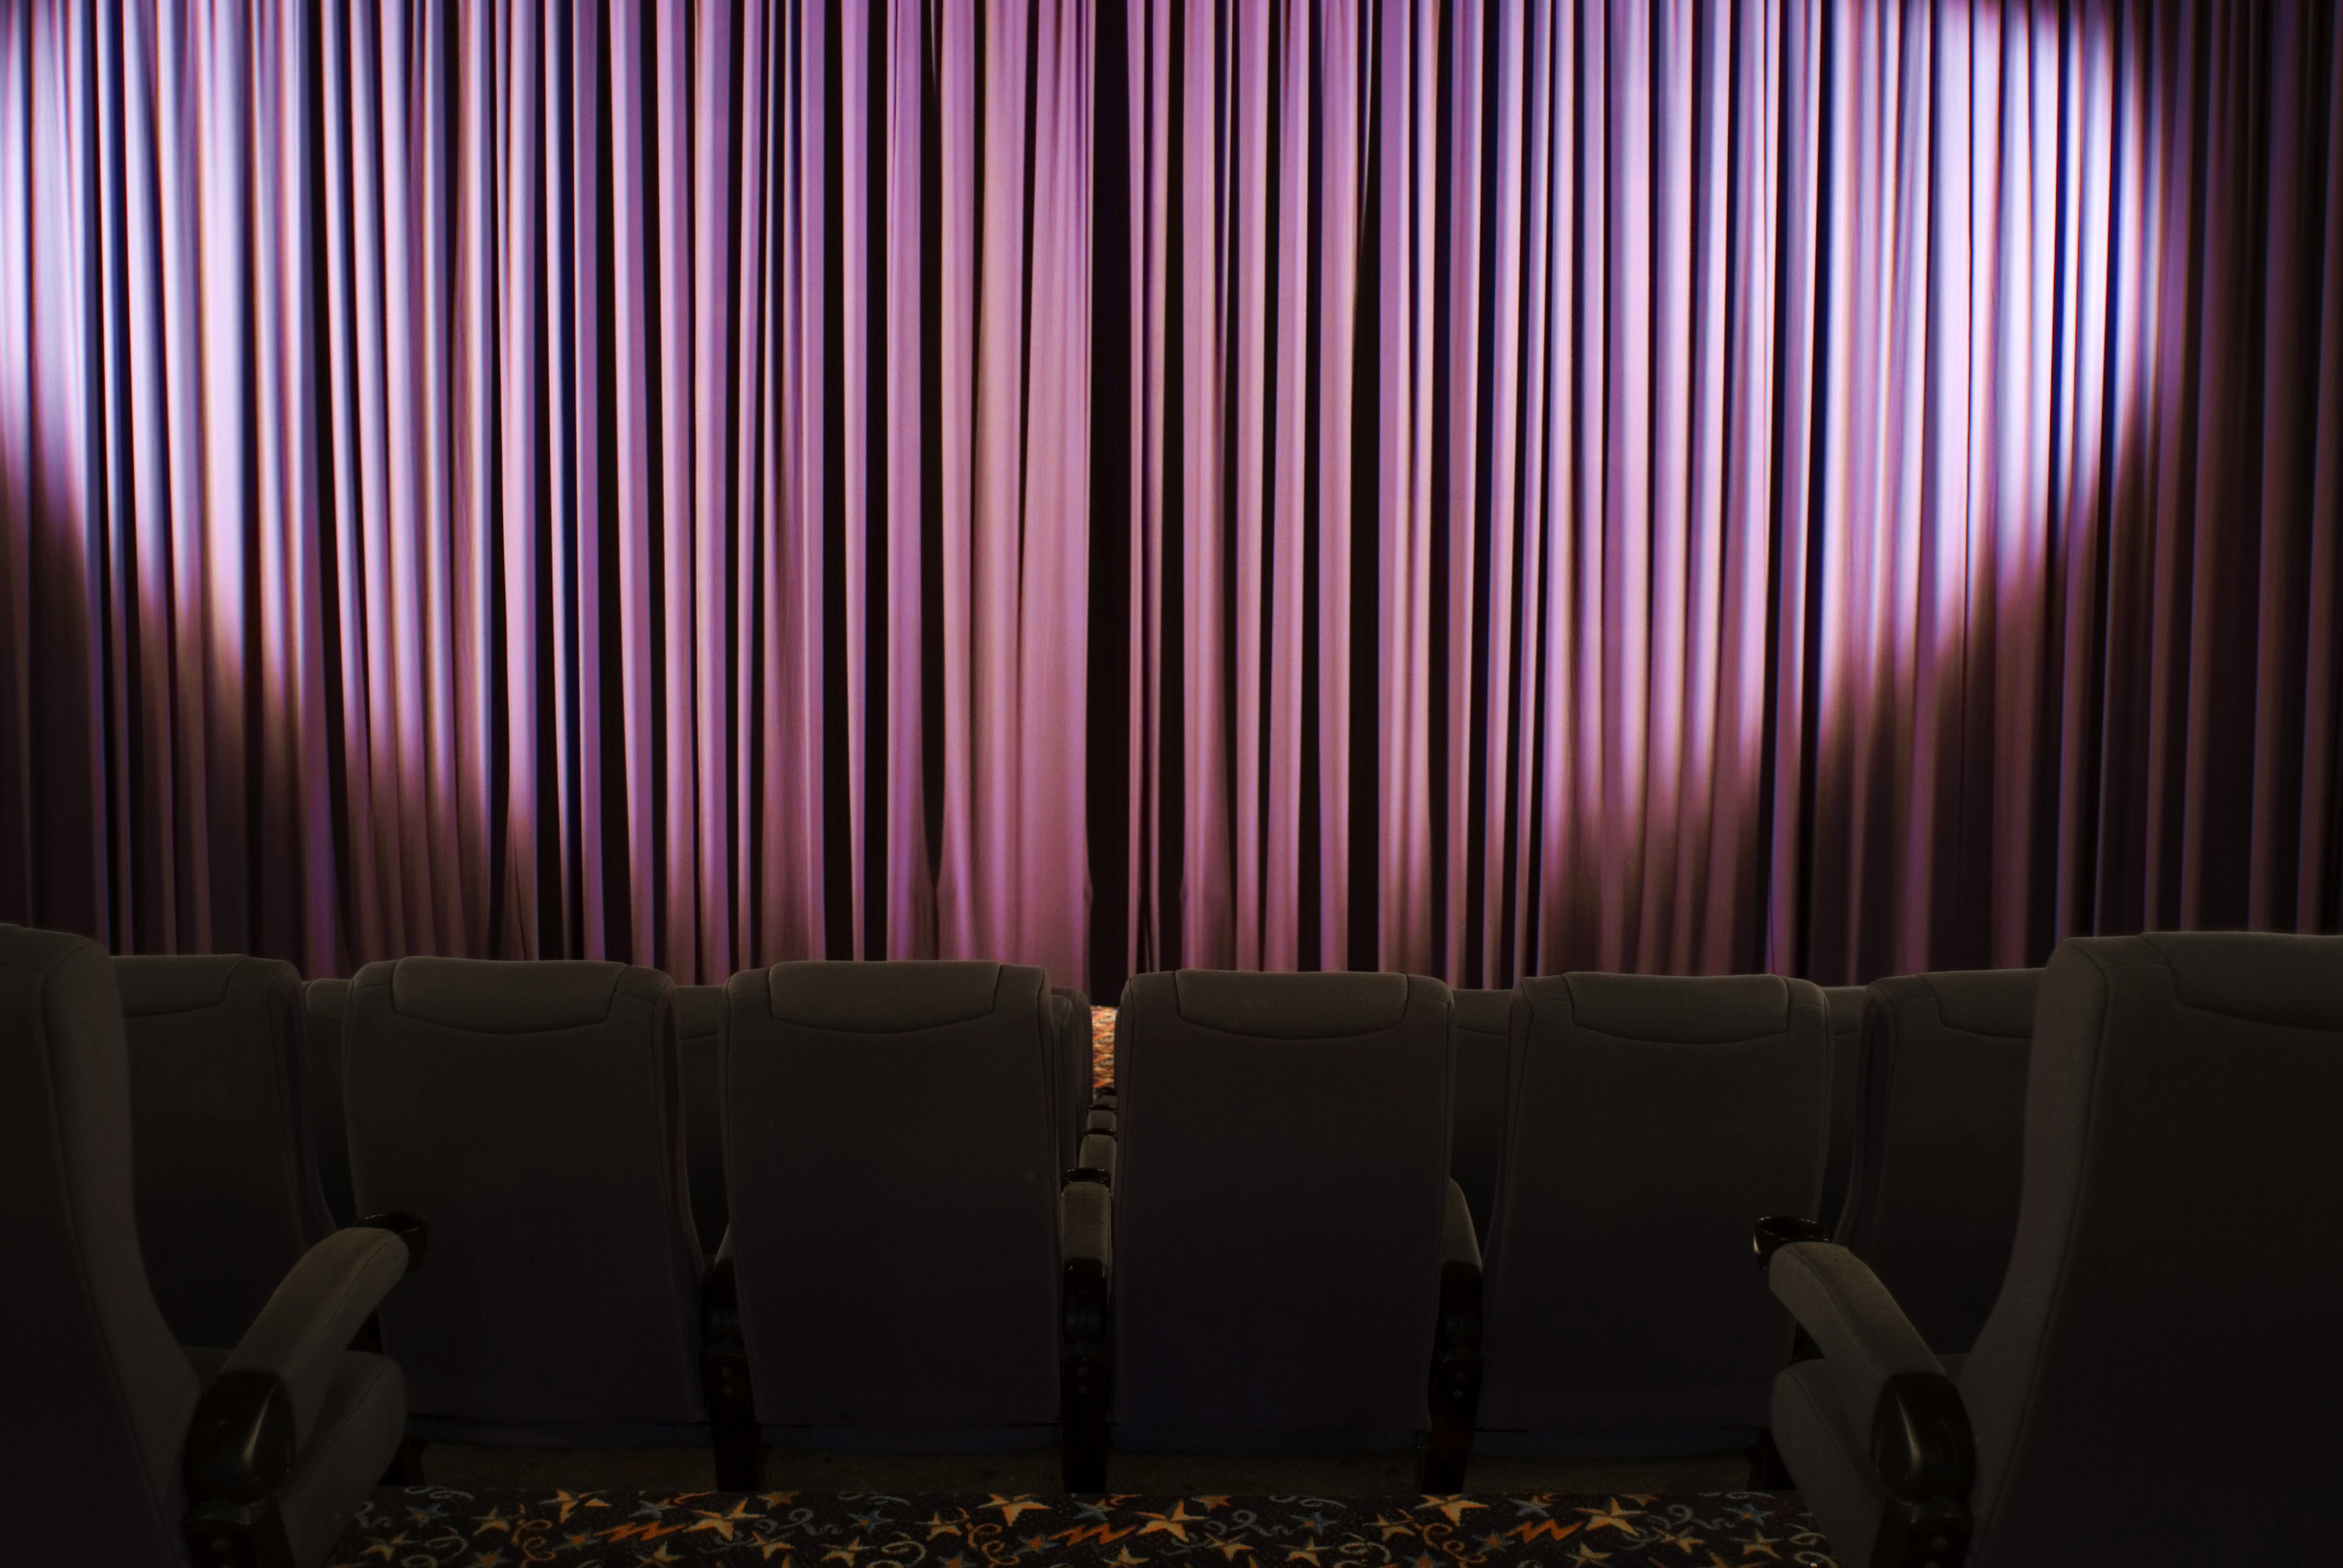 Stage curtains spotlight - Accept License And Download Image